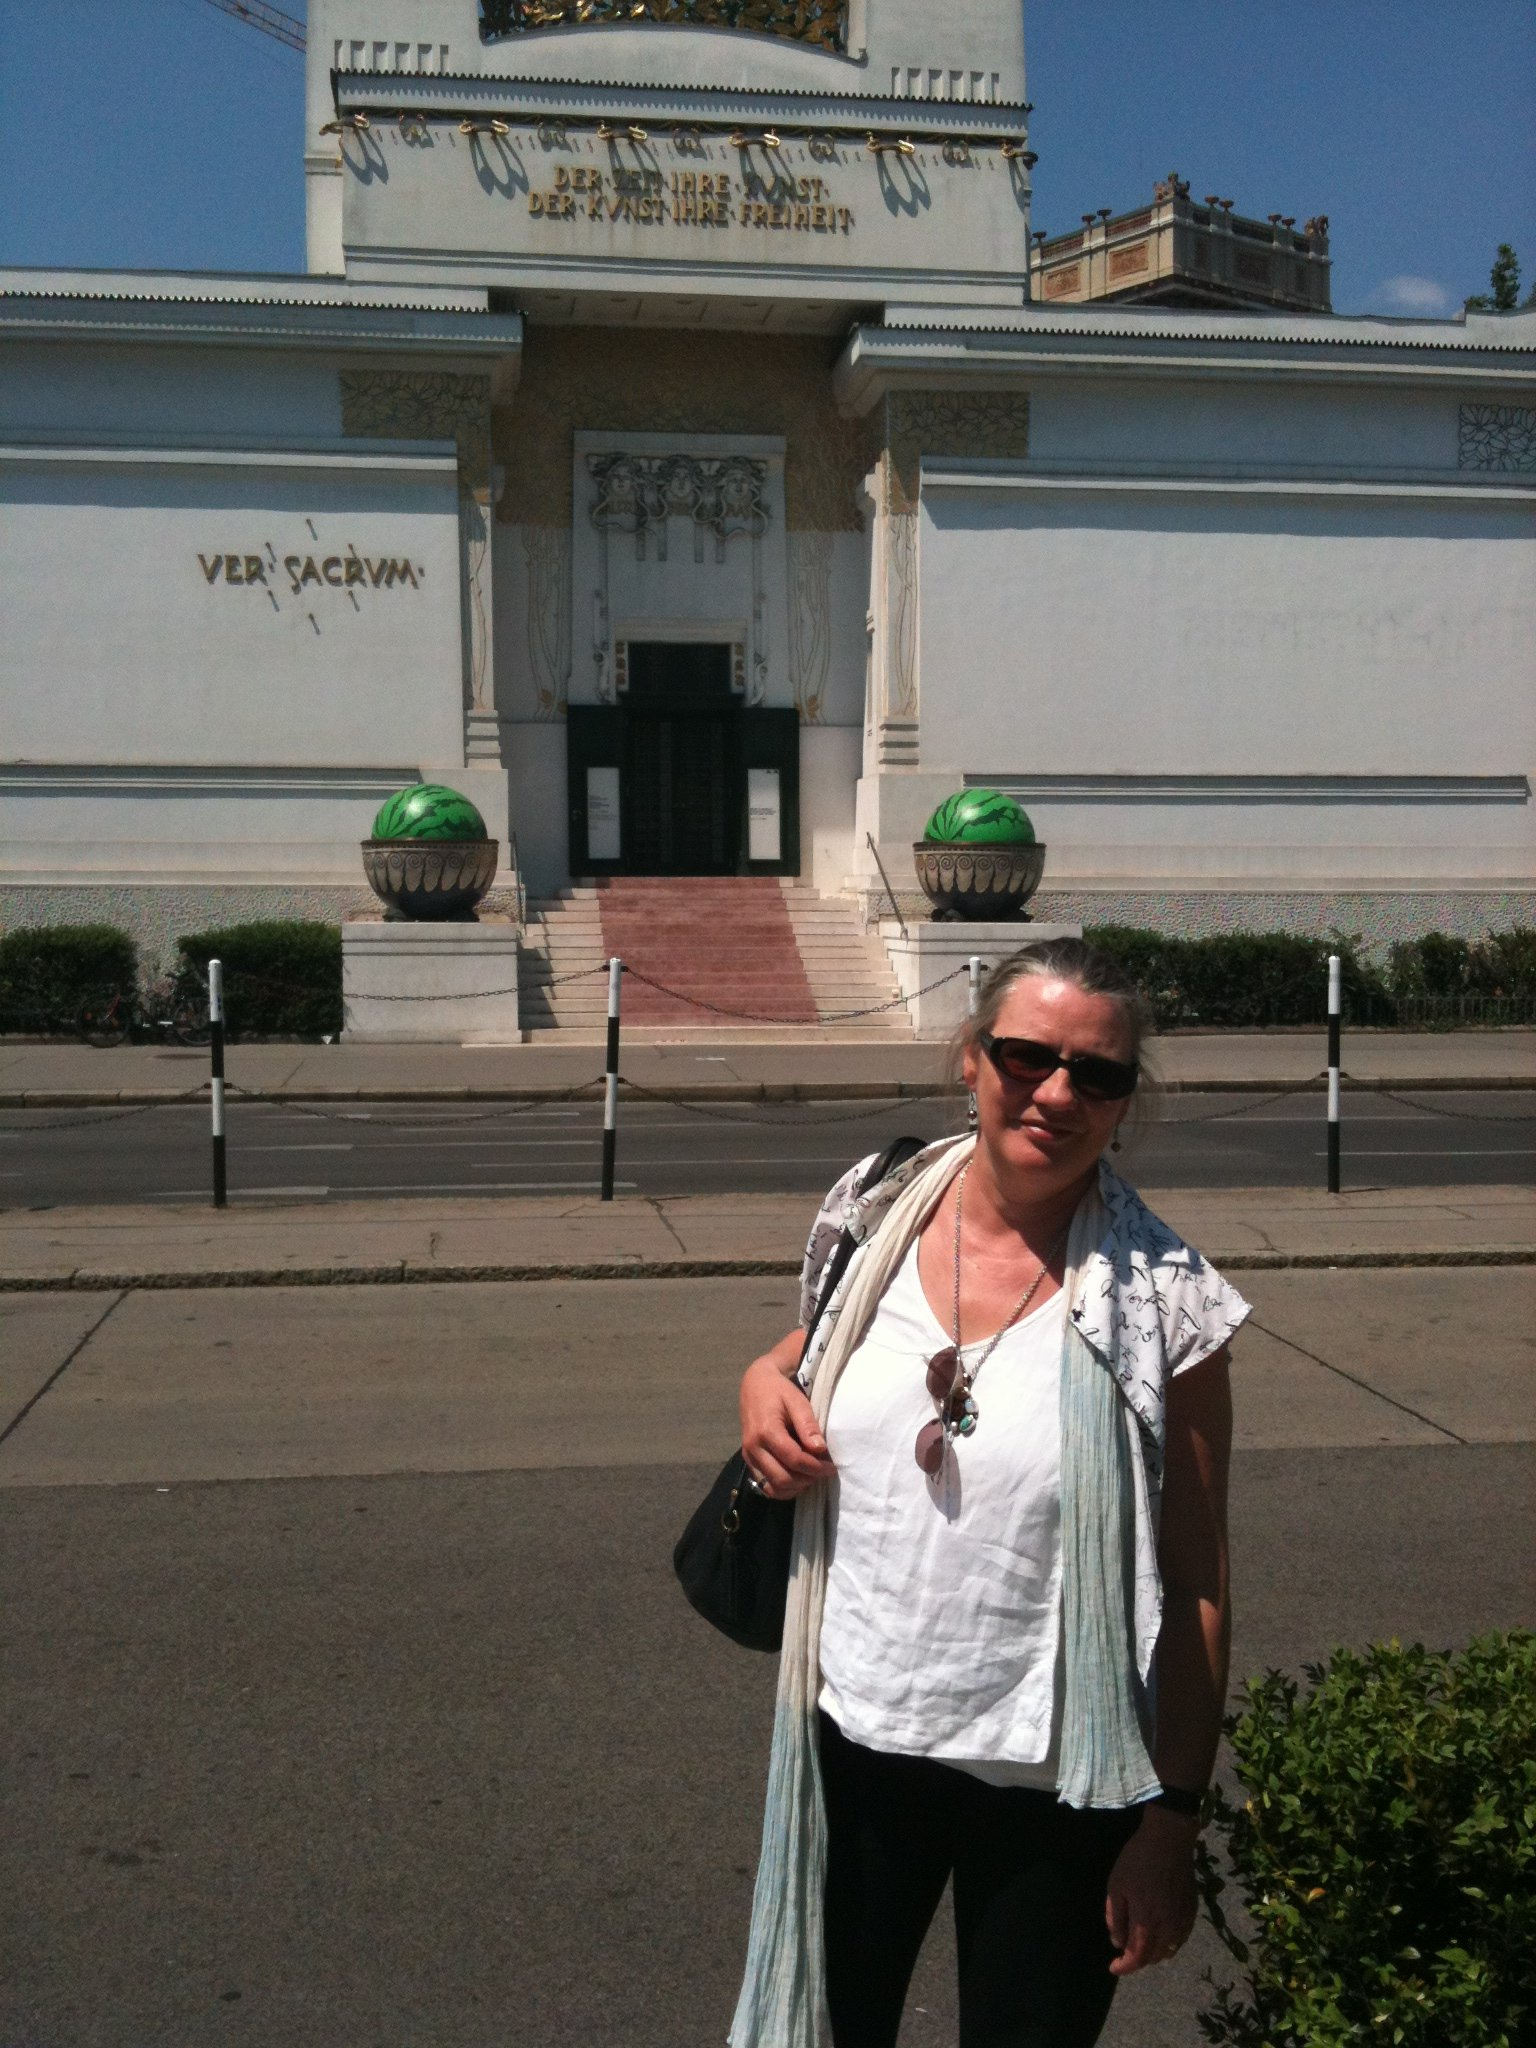 2012 - June 17, At the Vienna Secession